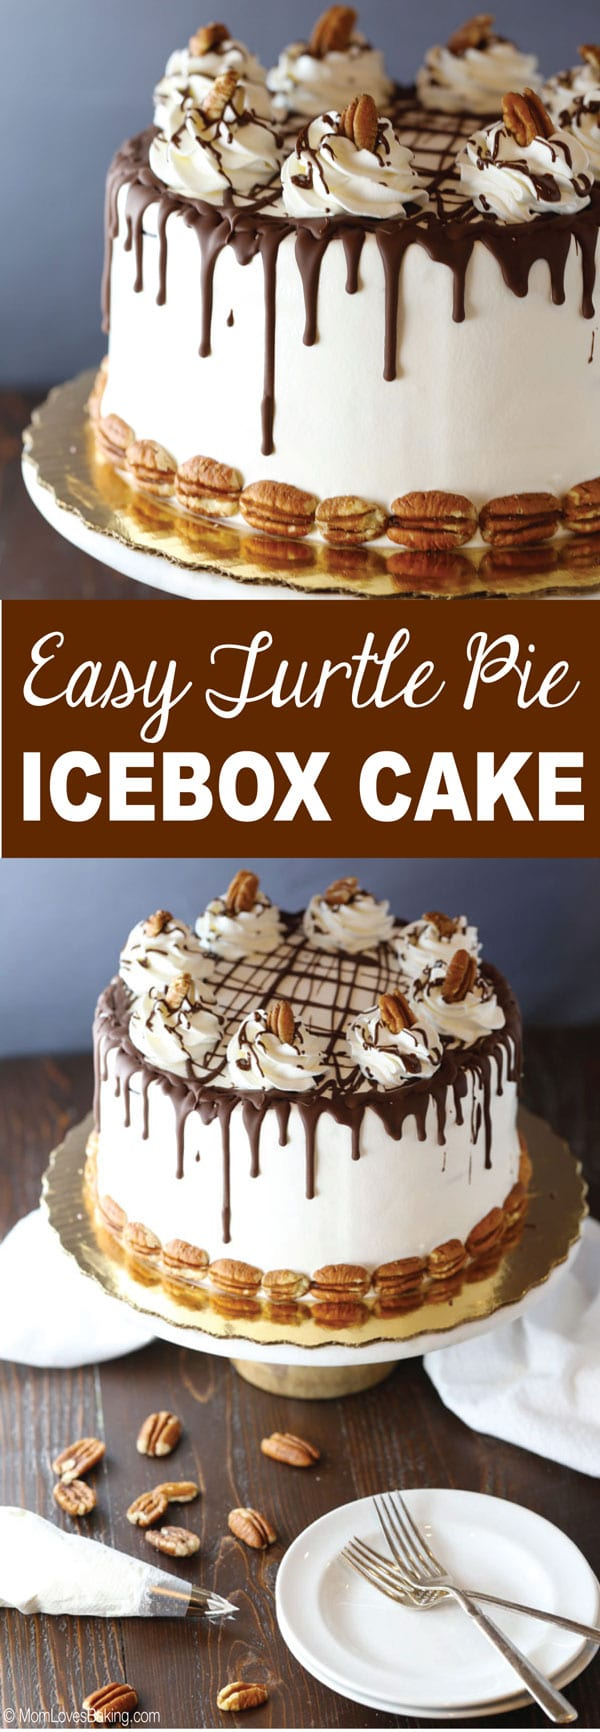 Easy Turtle Pie Ice Box Cake